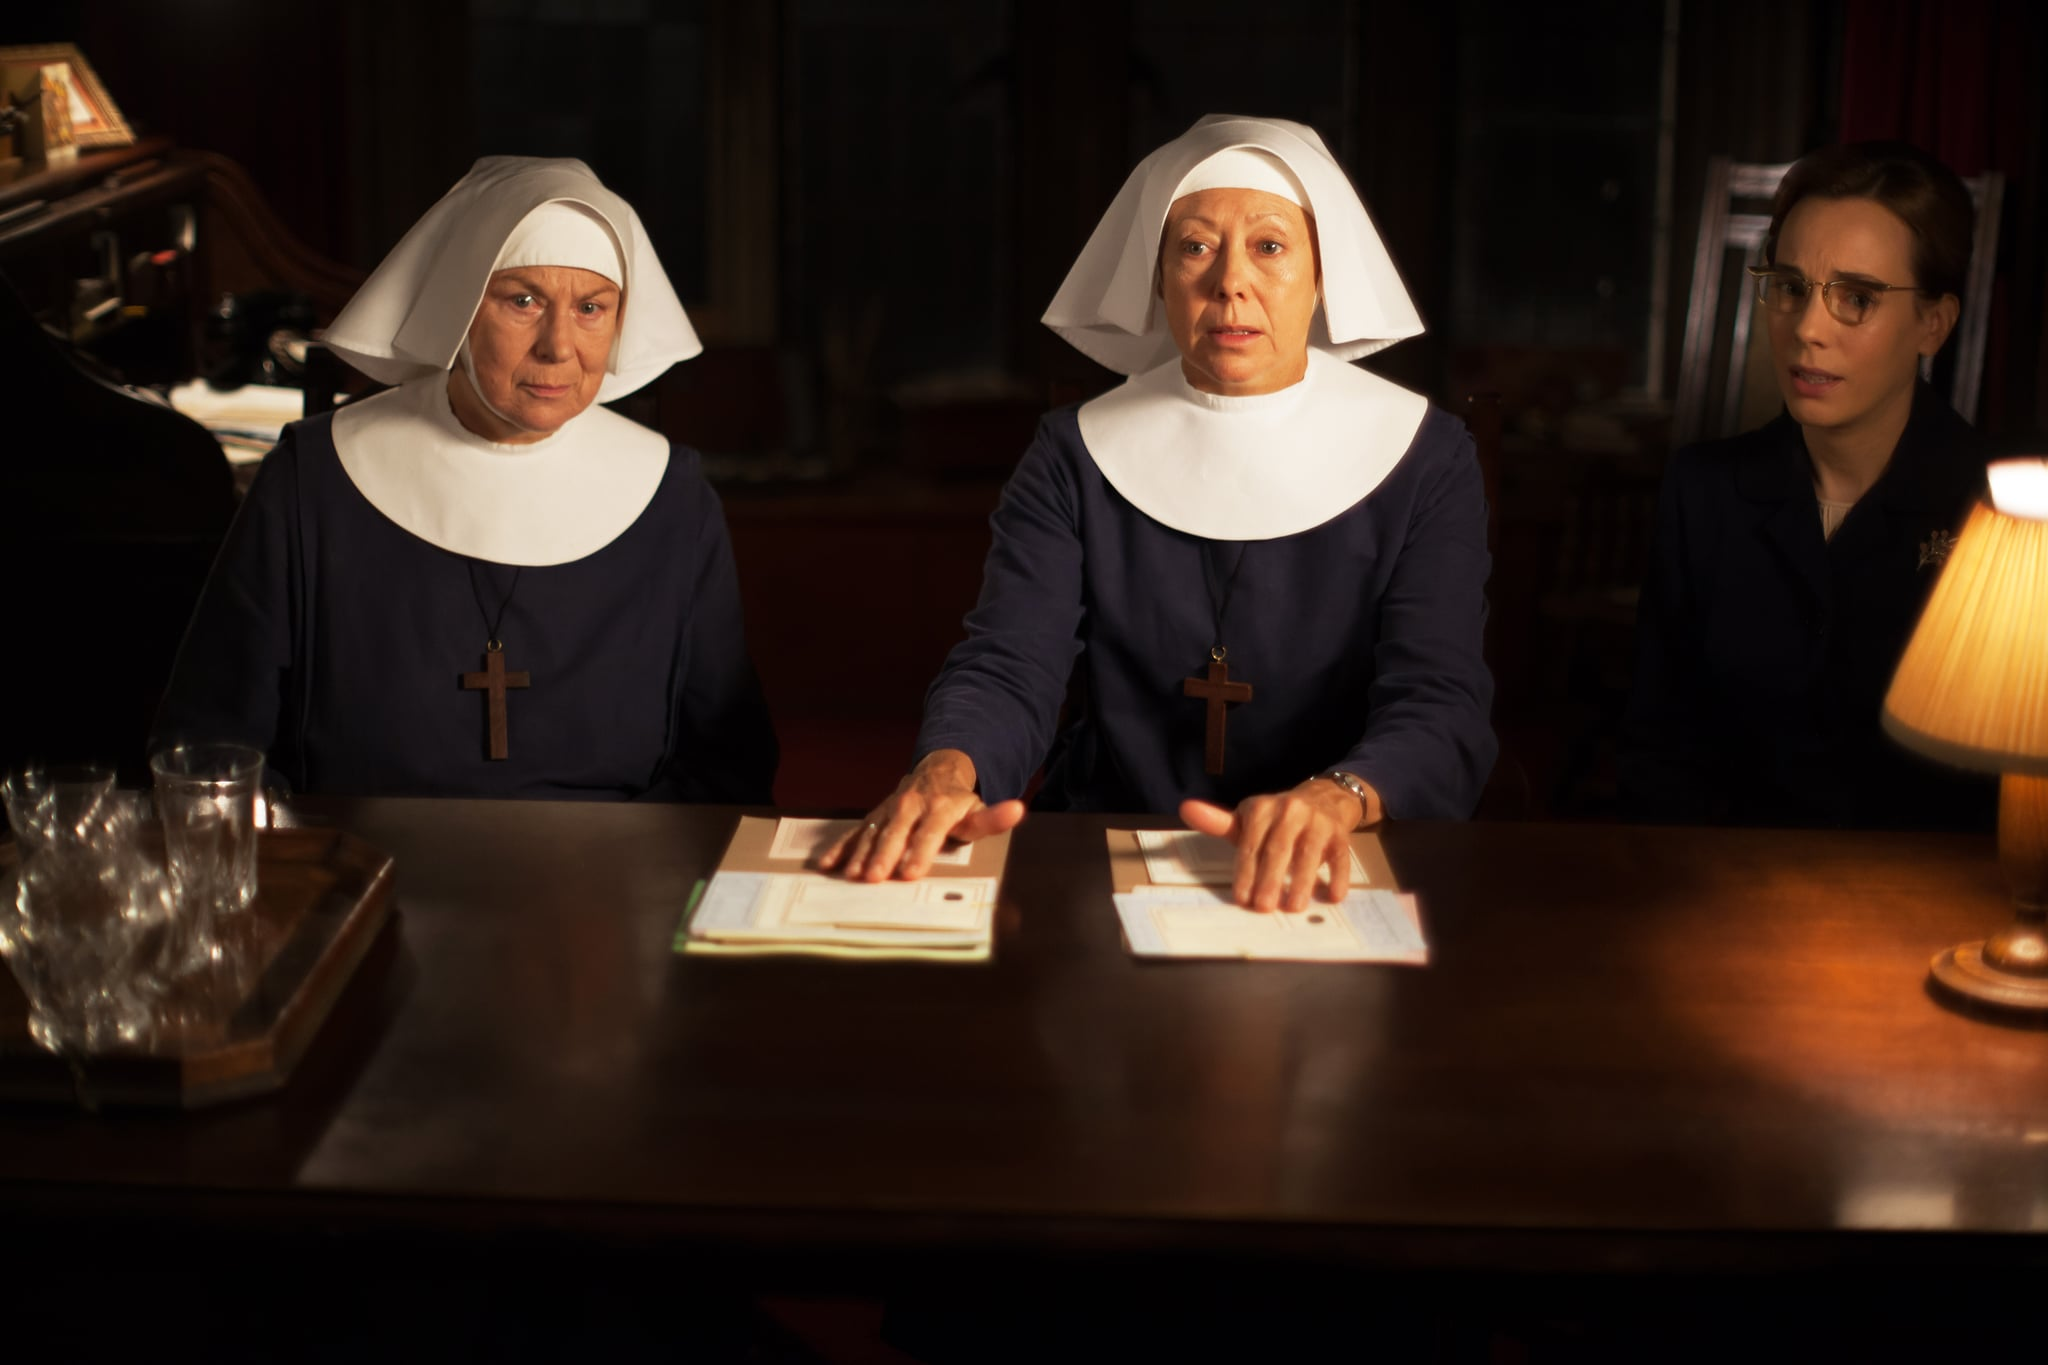 CALL THE MIDWIFE, l-r: Pam Ferris, Jenny Agutter, Laura Main, (Season 4, Episode 7, aired March 1, 2015). ph: Laurence Cendrowicz/PBS/courtesy Everett Collection